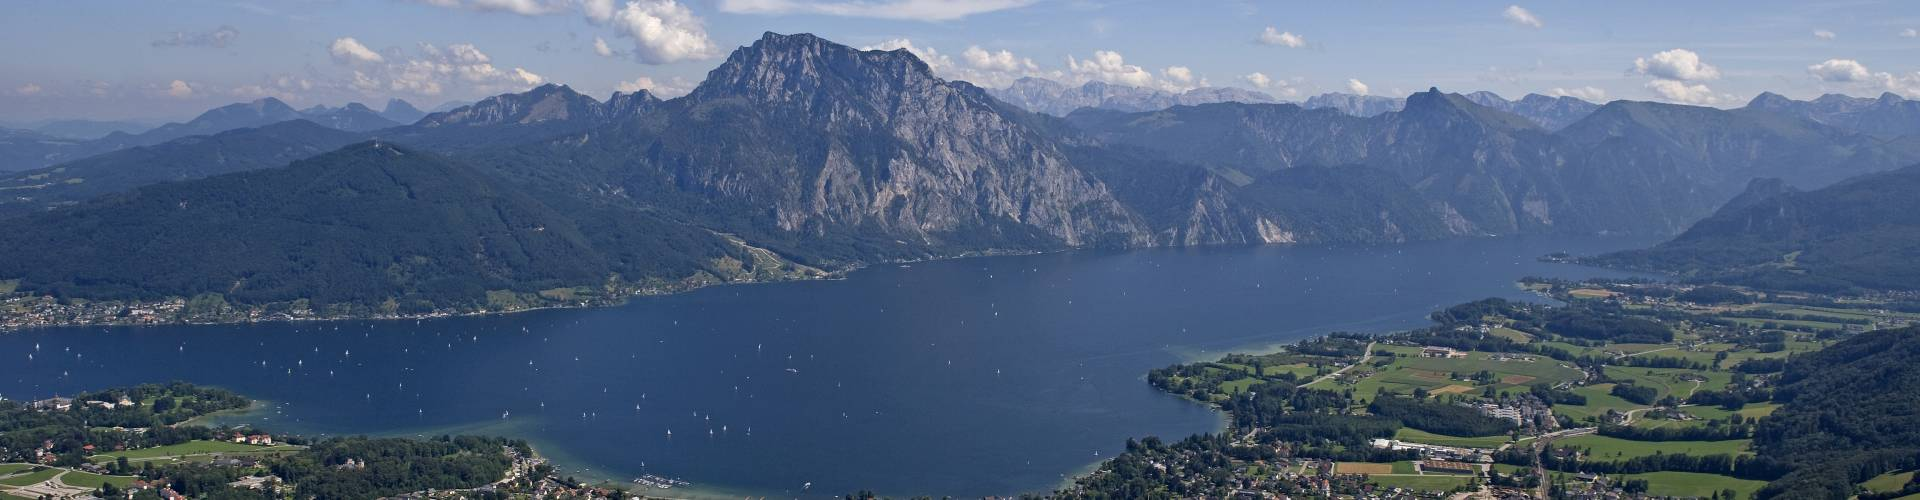 Immobilien - RE/MAX Traunsee